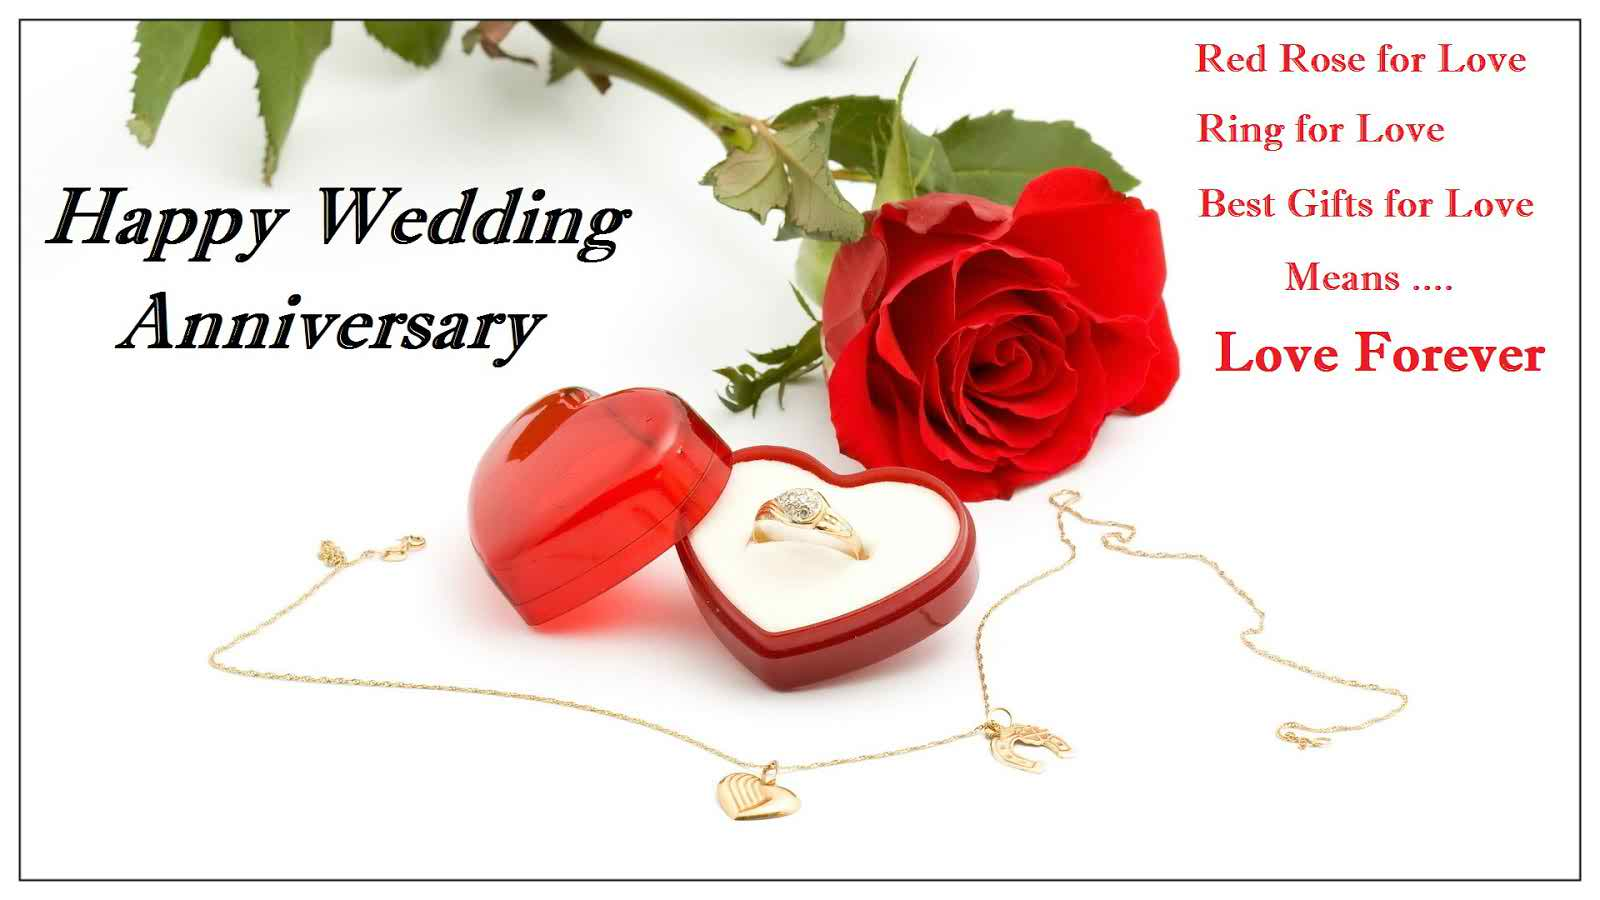 Wedding Anniversary Images - Weding Happy Anniversary Wishes ...